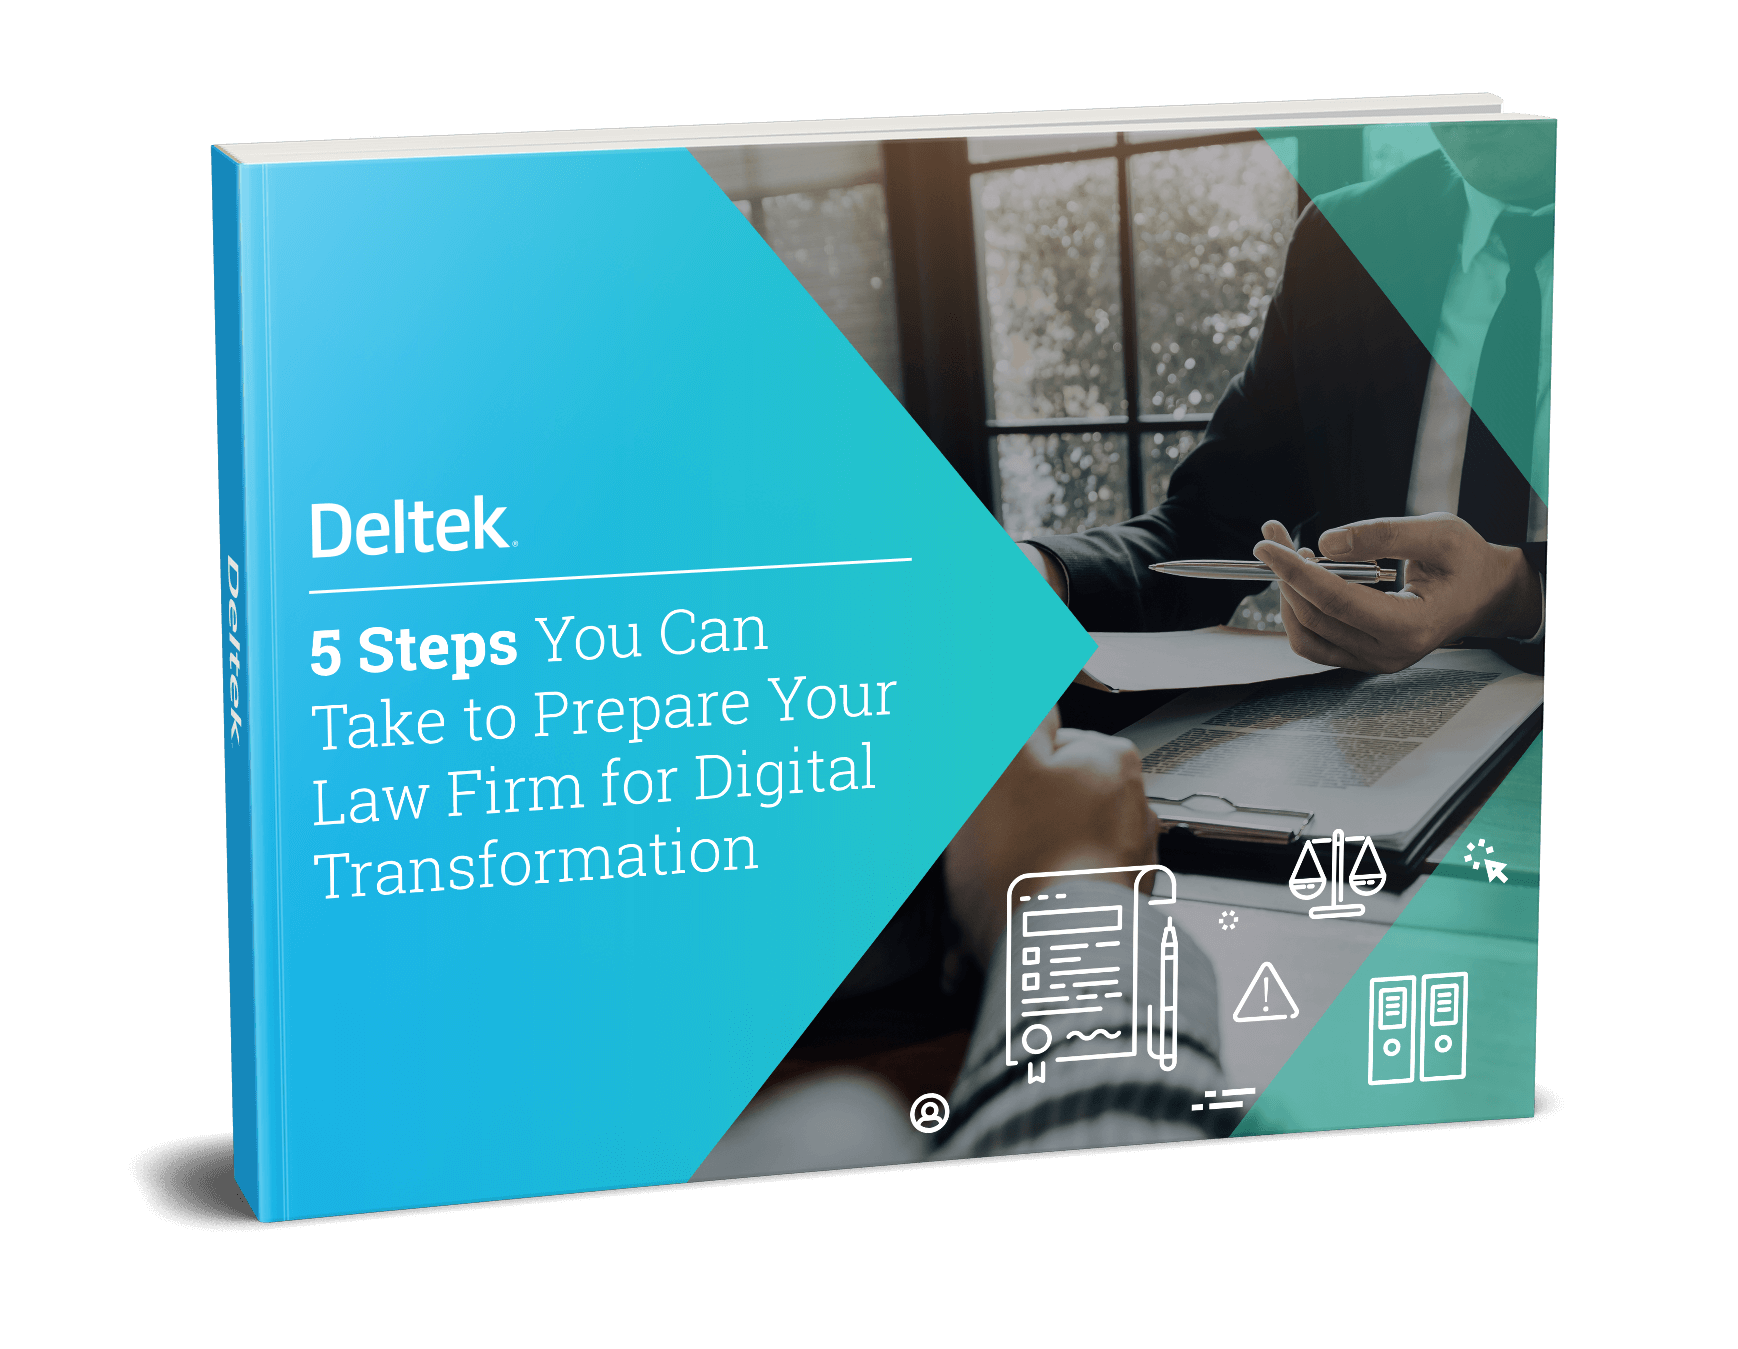 Guide: 5 Steps to preparing your law firm for digital transformation